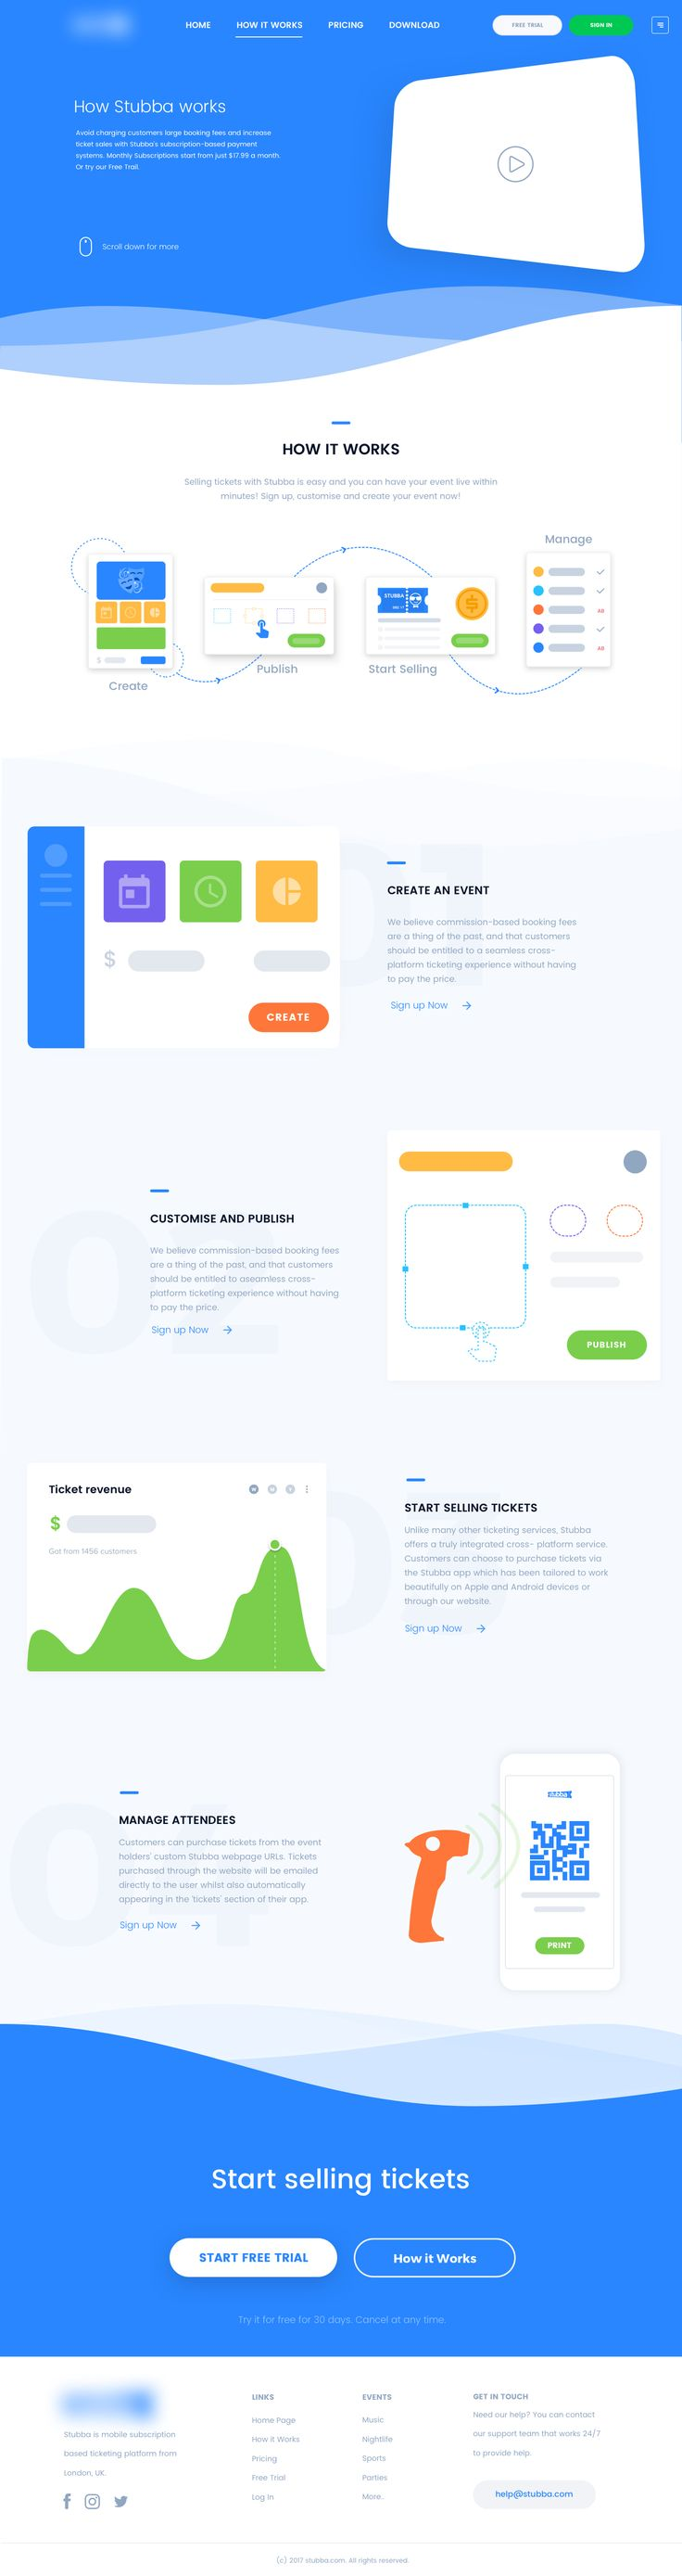 How it Works Page